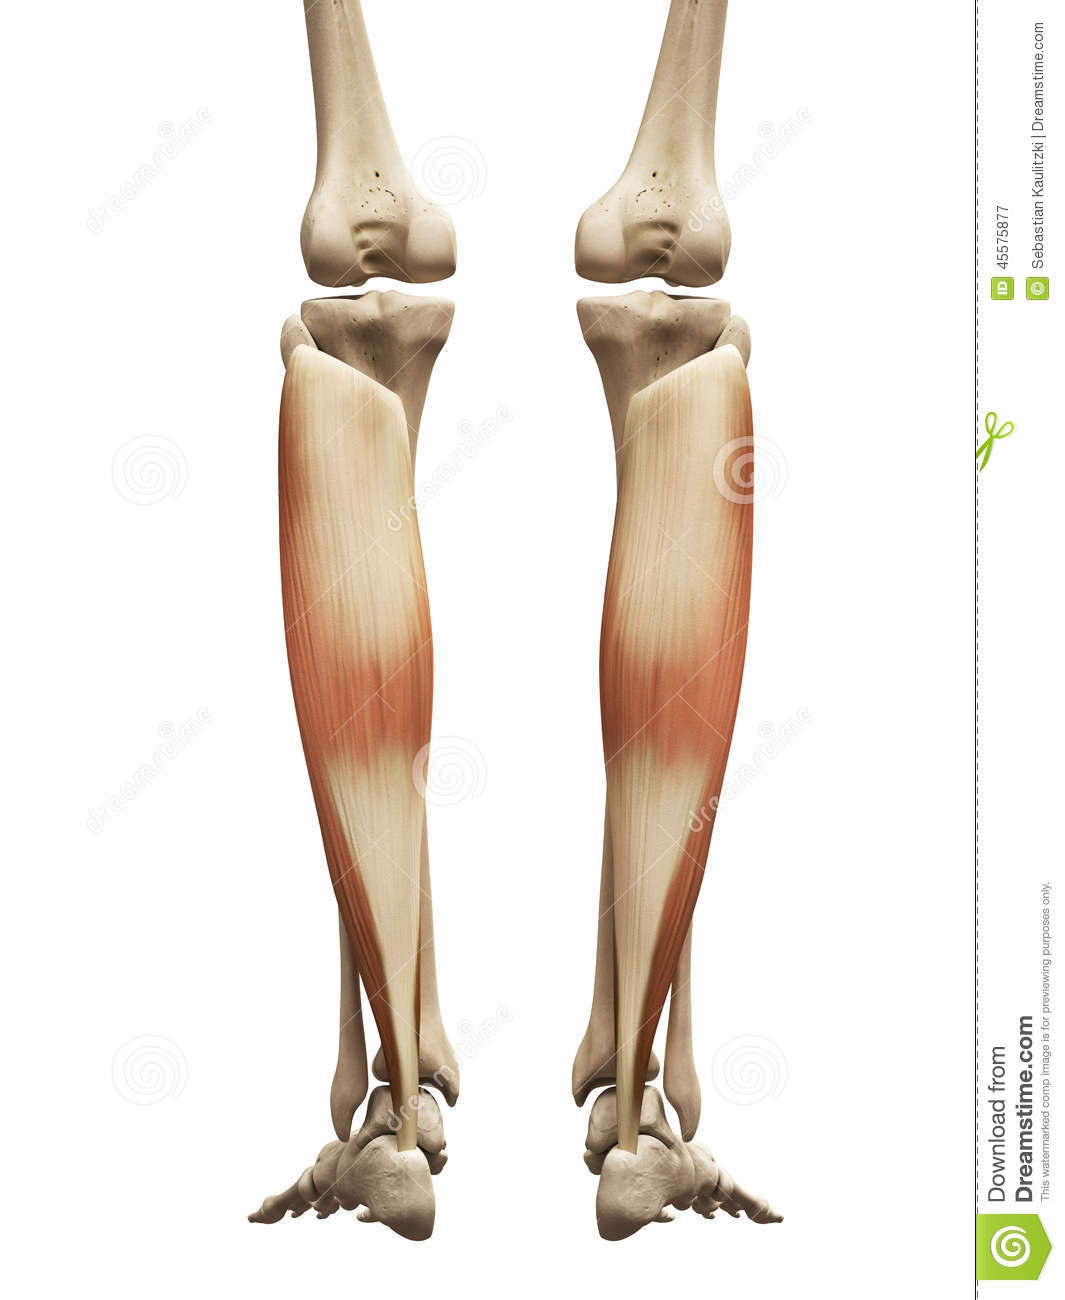 The soleus stock illustration. Illustration of bones - 45575877